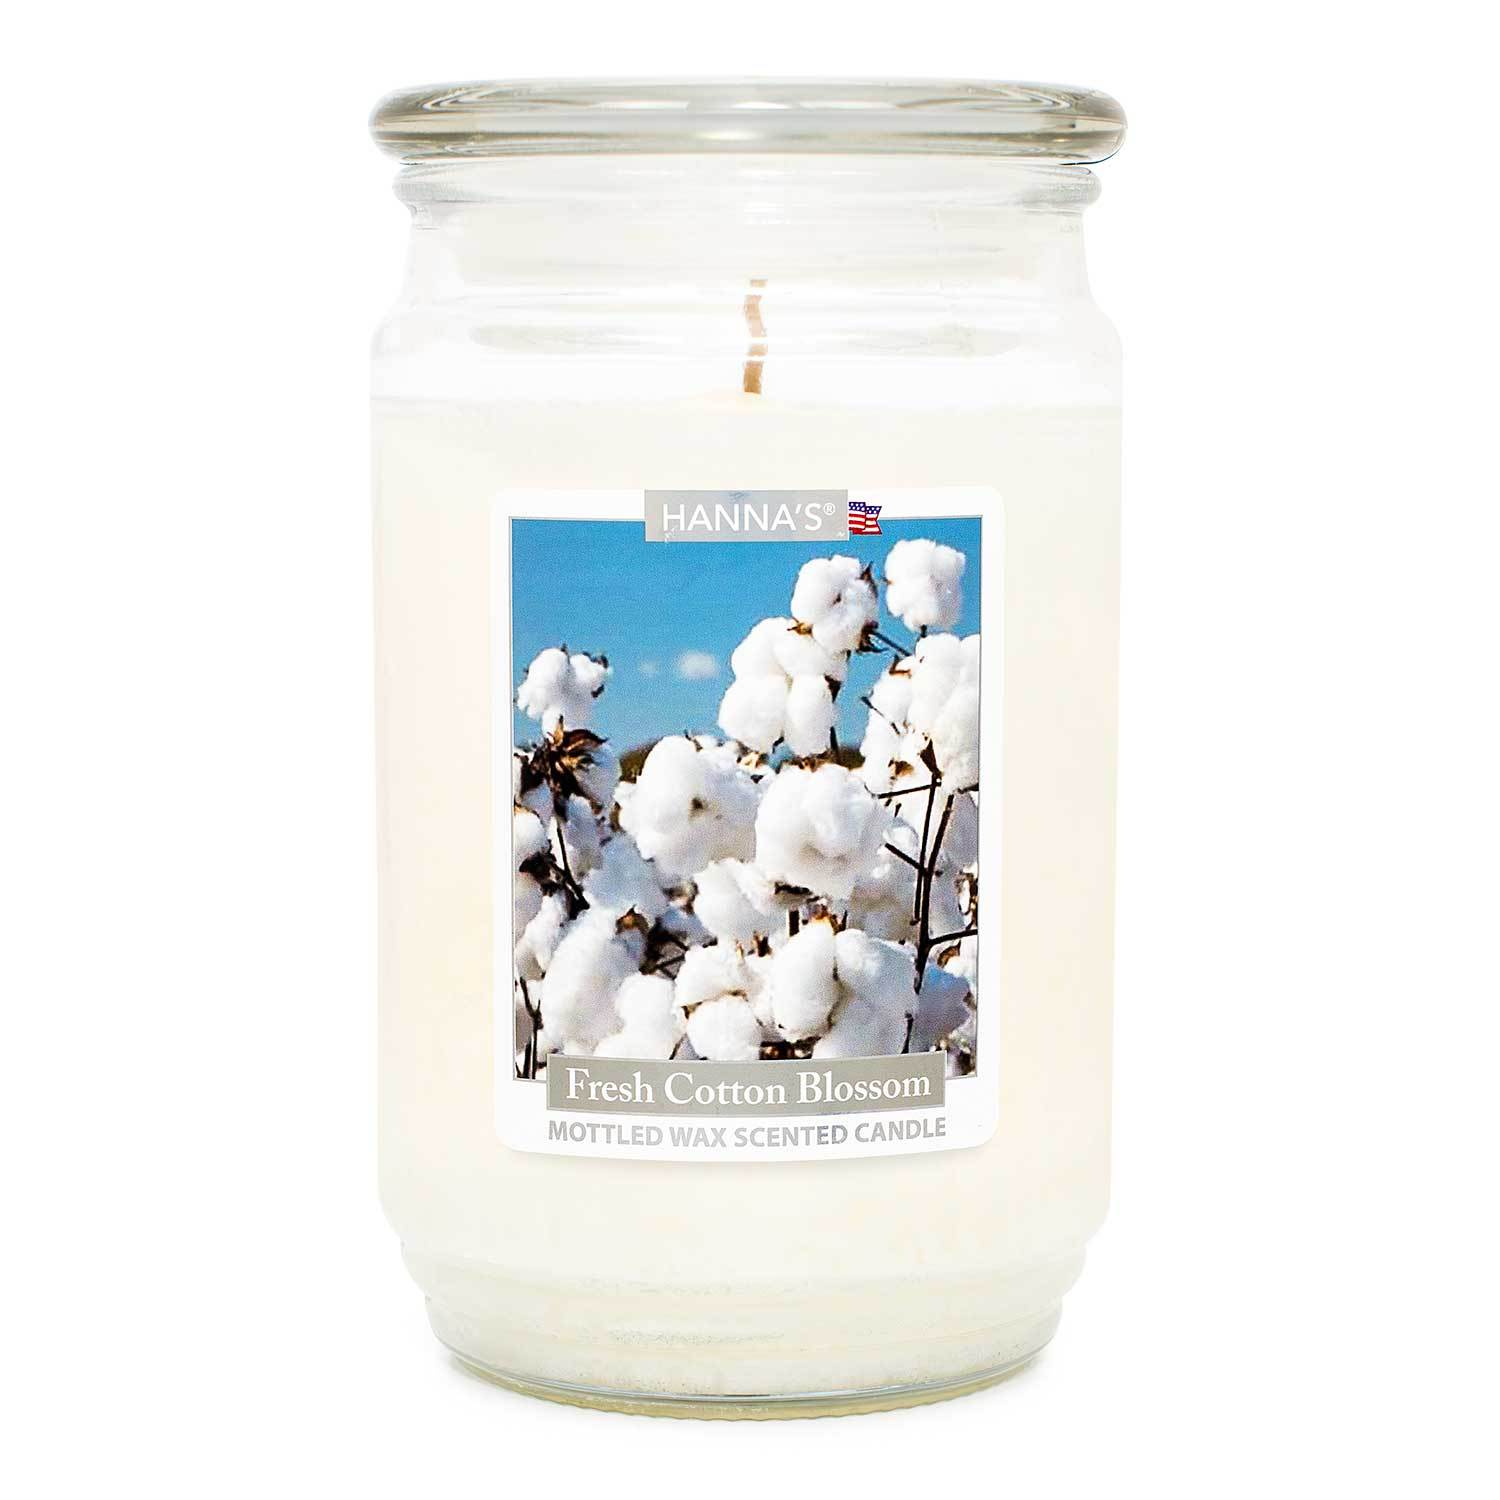 Fresh Cotton Blossom Scented Mottled Wax Candle - Candlemart.com